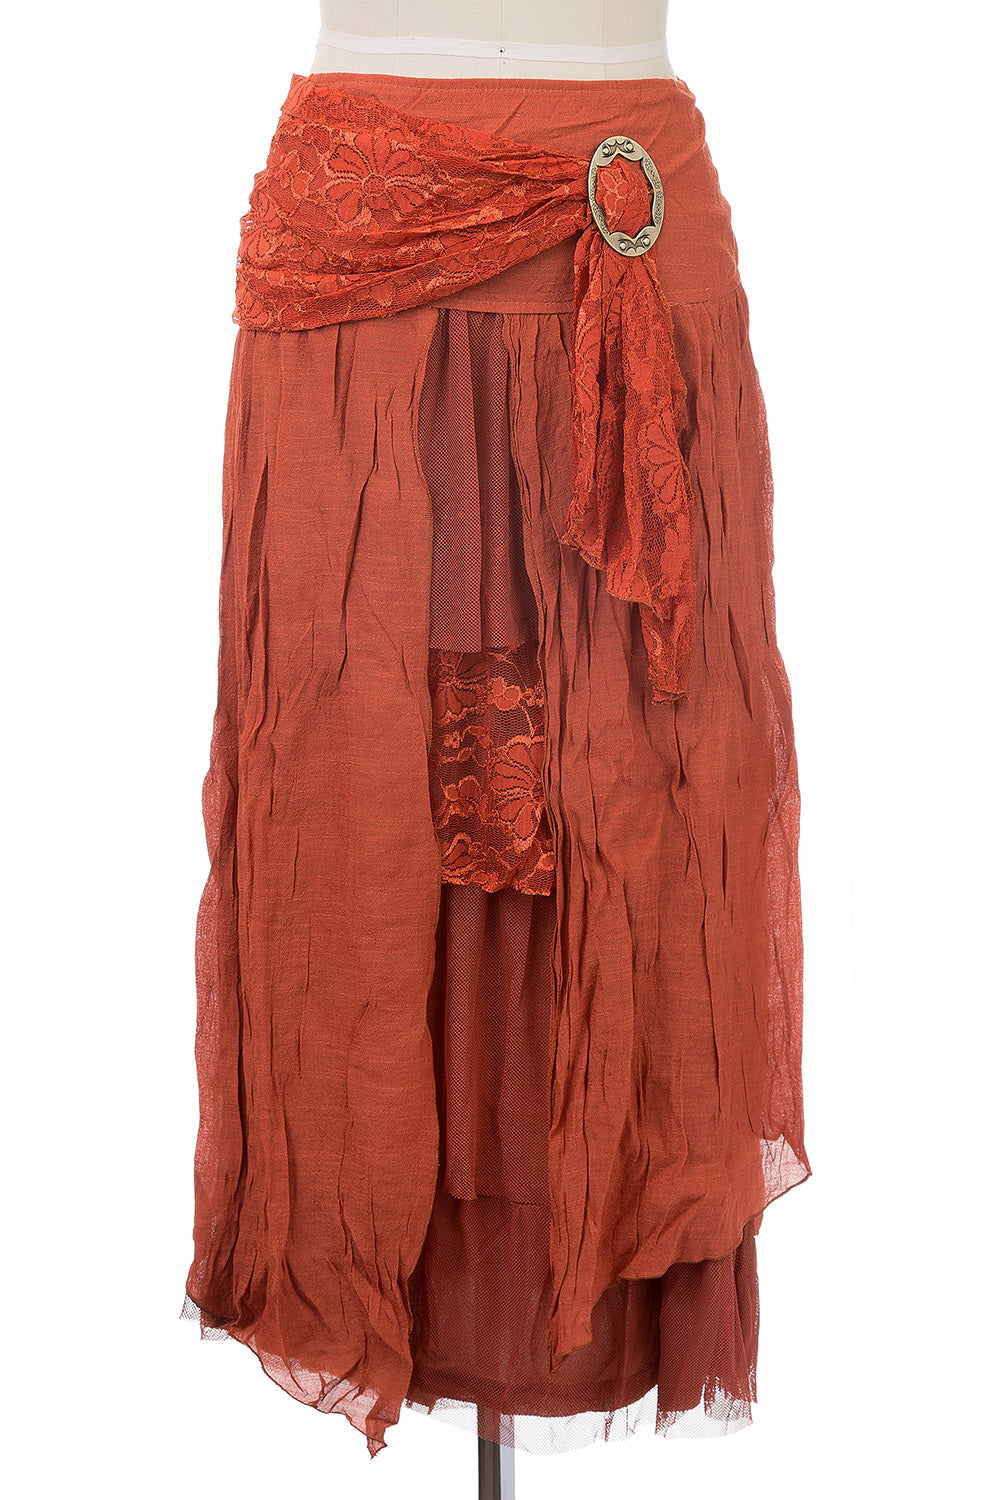 Type 3 Gypsy Skirt in Orange